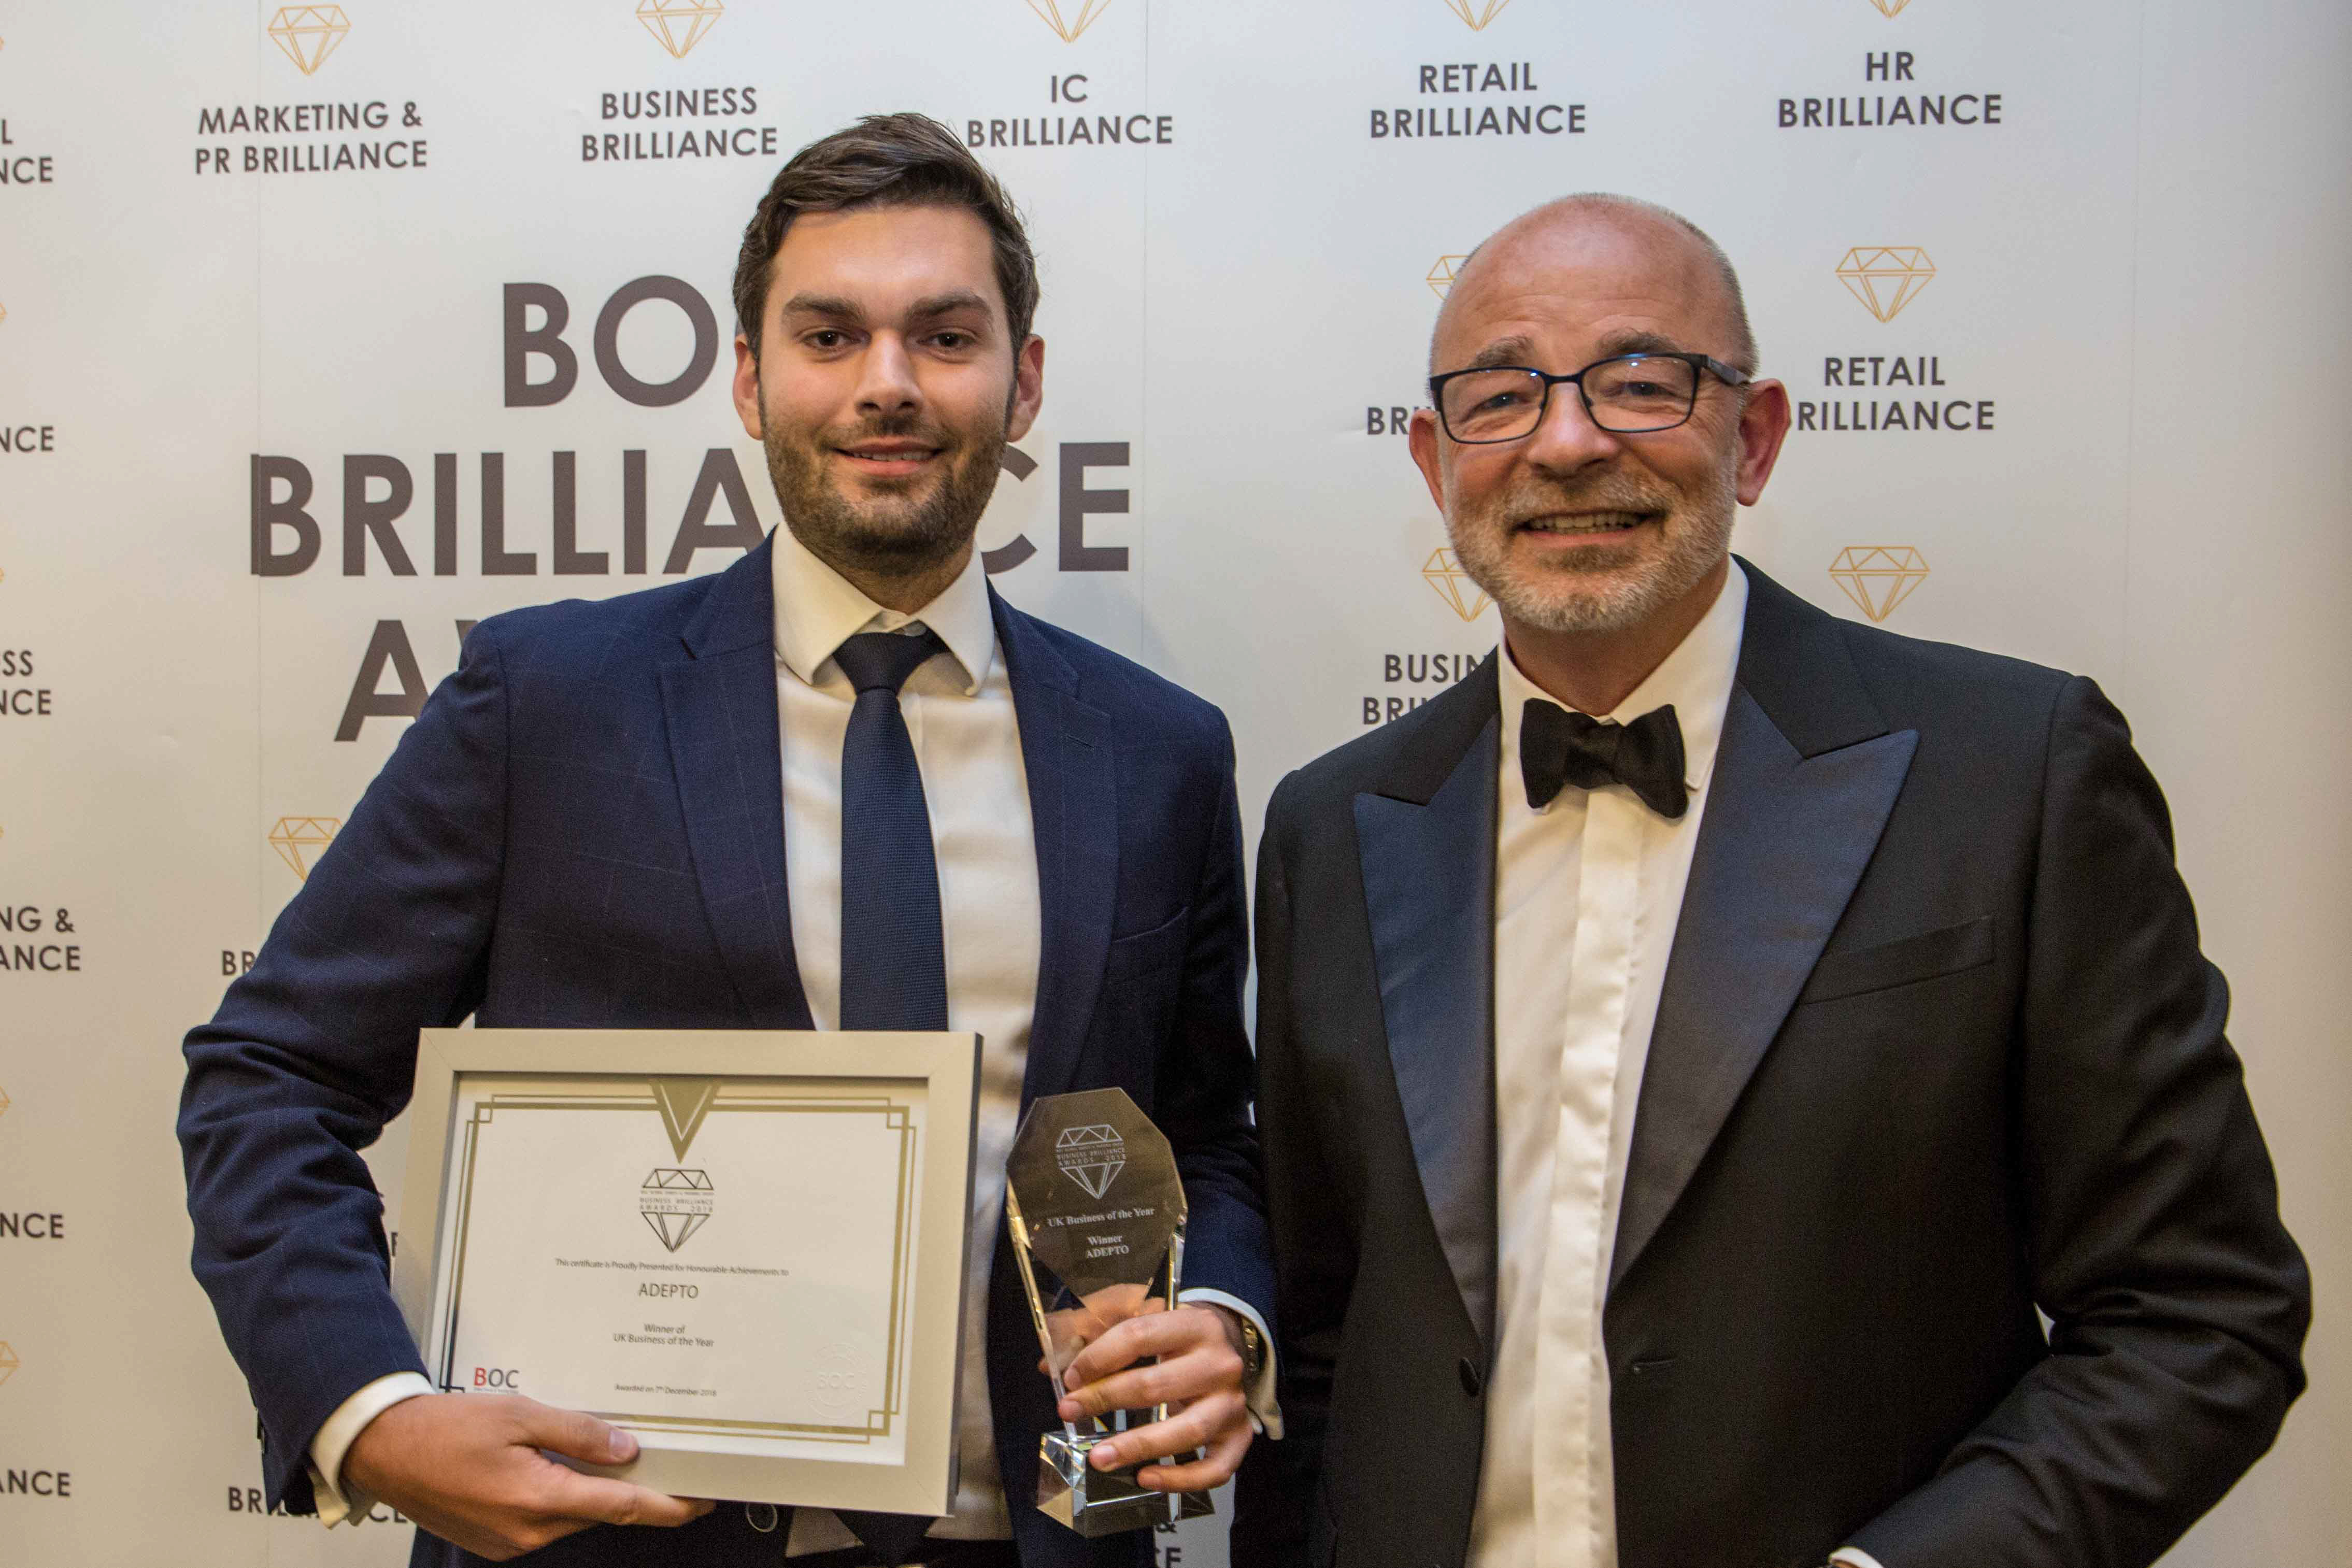 Adepto - Business bRilliance Awards 2018